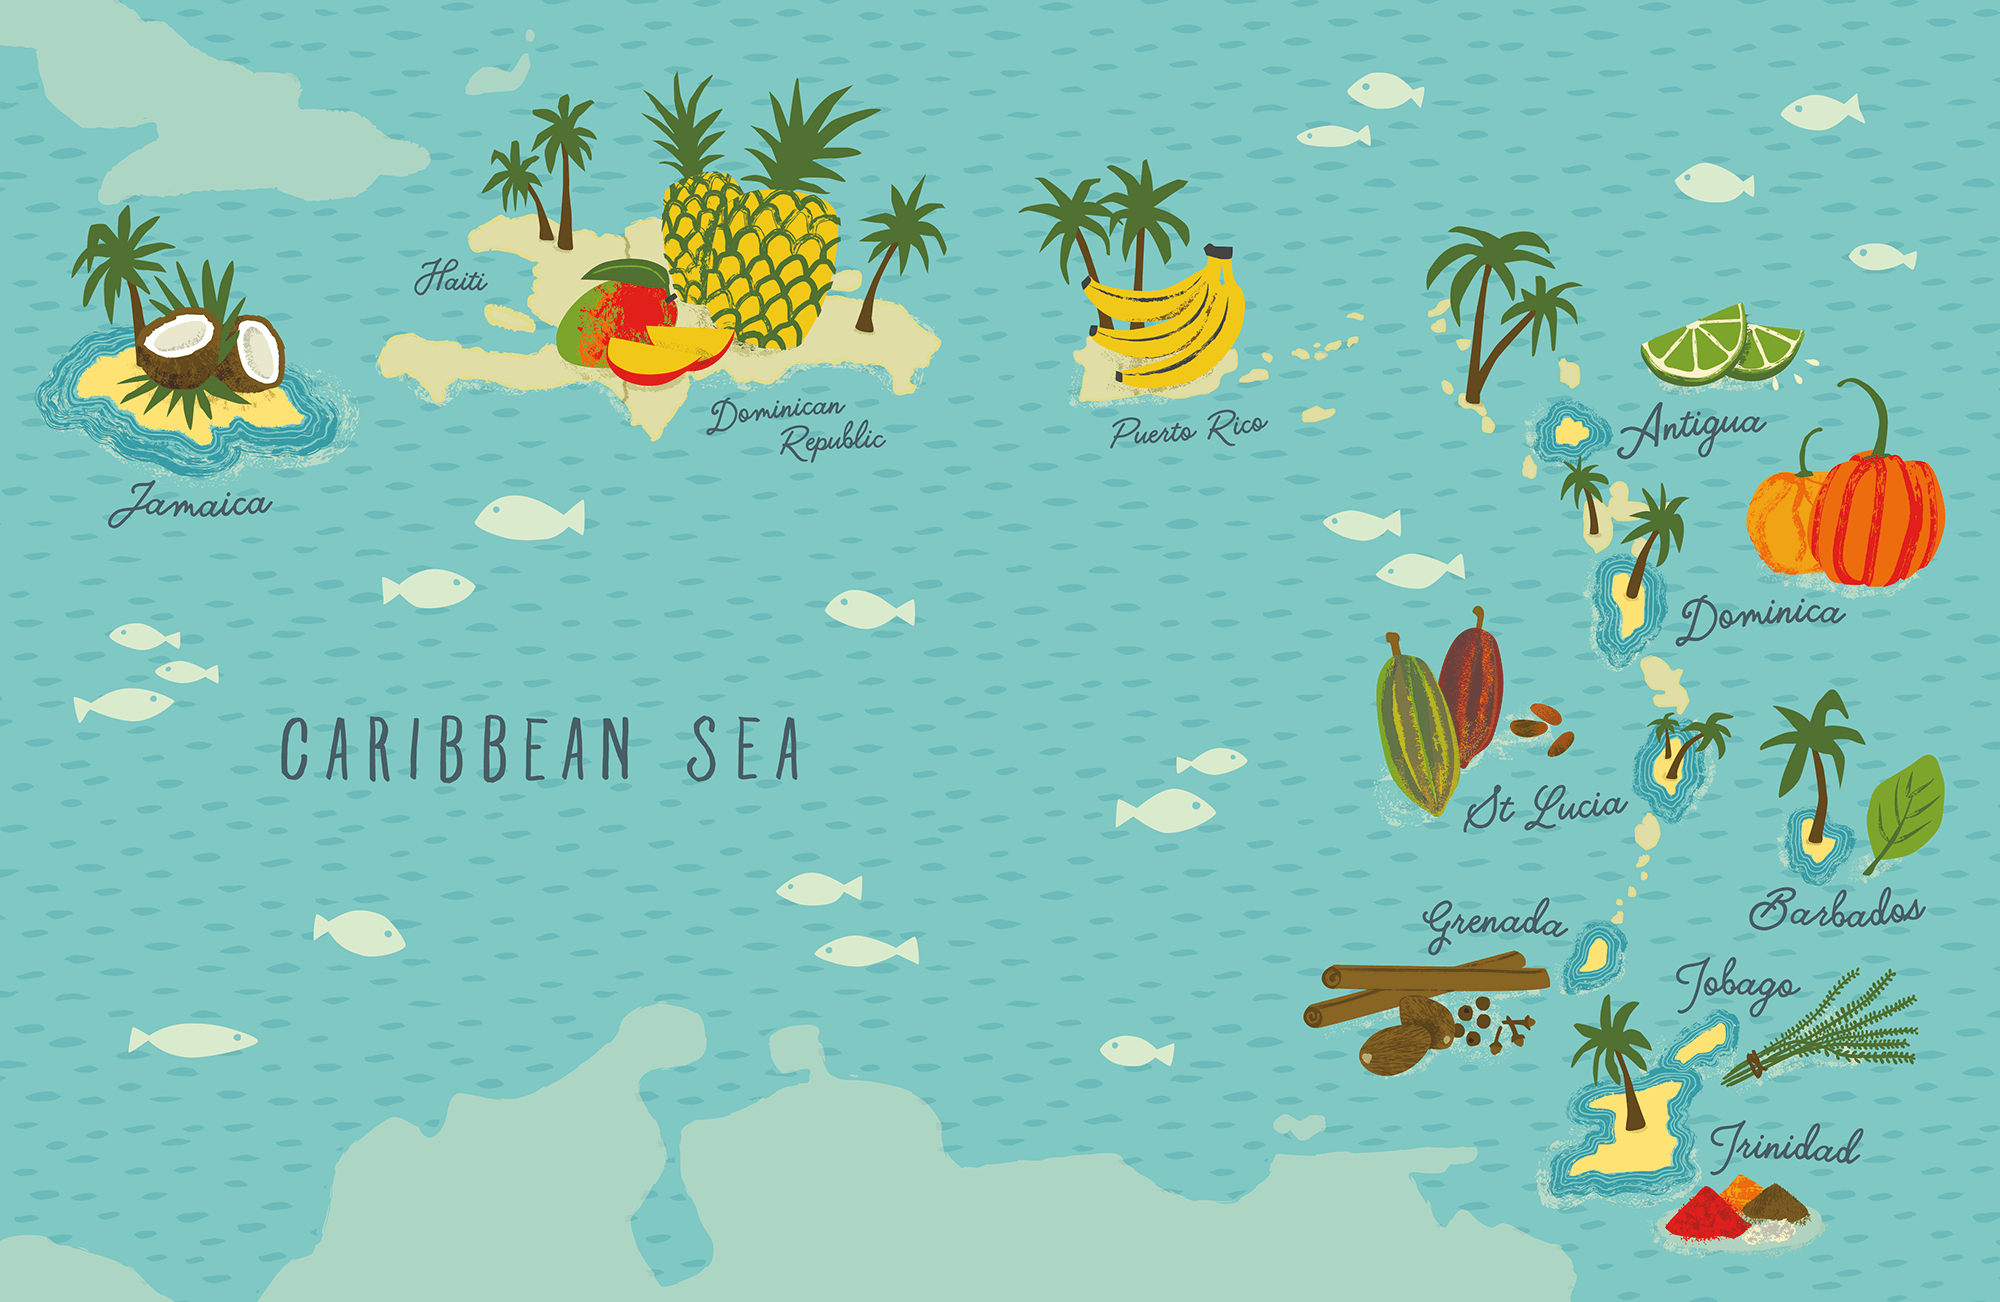 Caribbean Map - Endpaper for Ainsley Harriott's book, 'Ainsley's Caribbean Kitchen'